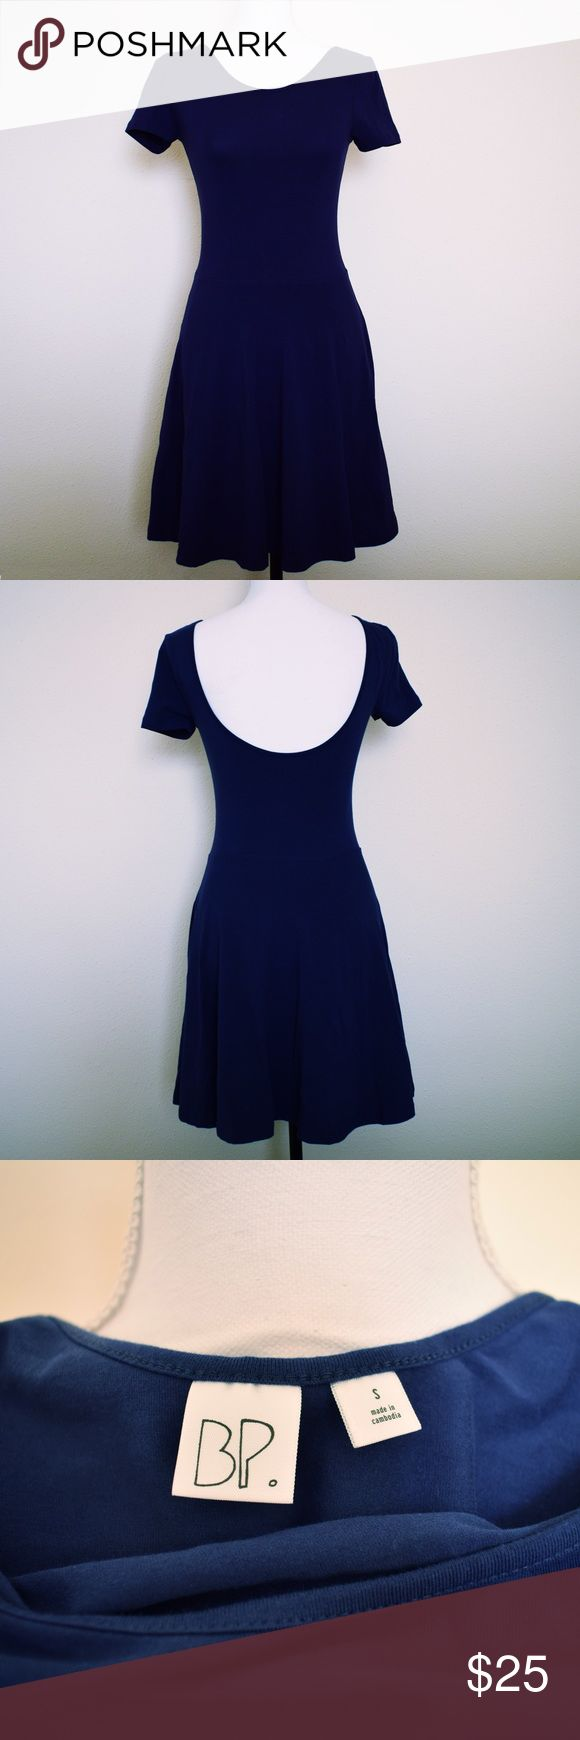 NWOT BP Navy Skater Dress Brand new and never worn! Super stylish and a perfect staple for any closet! This gorgeous navy dress is a size small.   Measurements:  14 in across shoulder to shoulder  31.5 in long 26 in around waist Nordstrom Dresses Mini